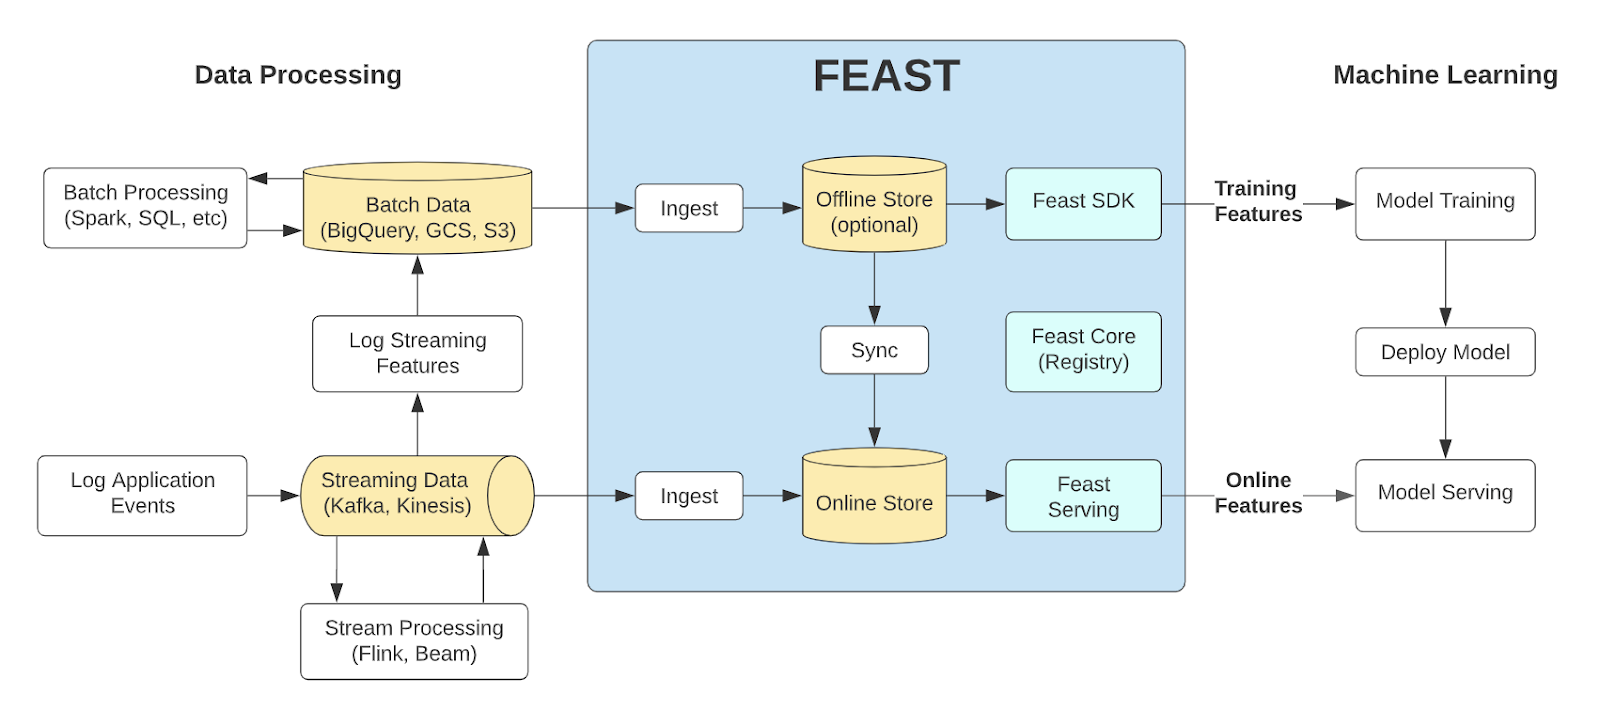 FEAST architecture, highlighting the interface between data processing and machine learning. Source: FEAST documentation